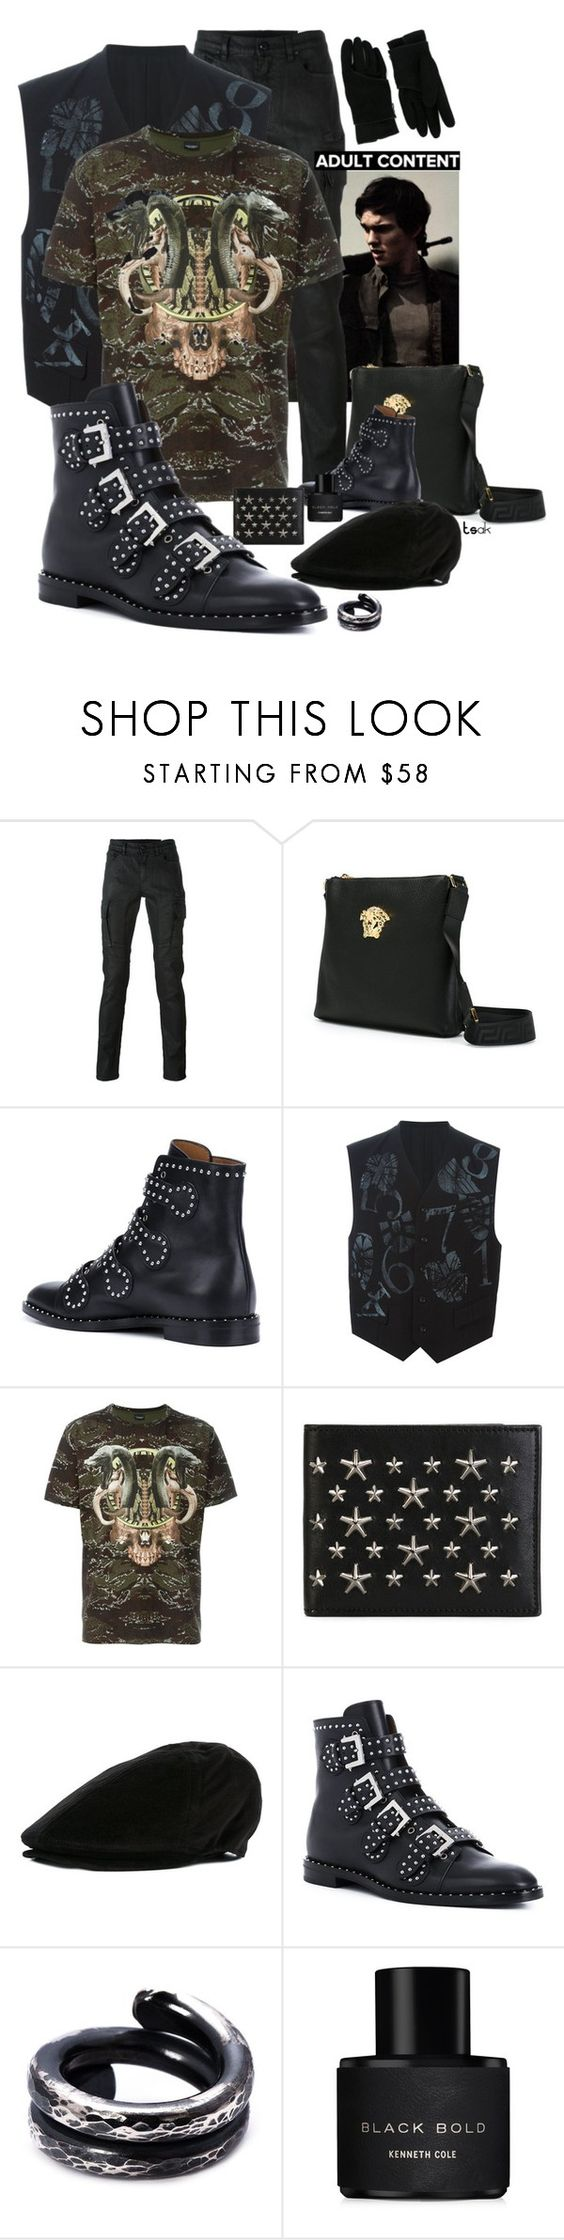 """""""Shut up"""" by princeoftyre ❤ liked on Polyvore featuring Belstaff, Comme des Garçons, Jimmy Choo, Dolce&Gabbana, Chin Teo, Kenneth Cole, men's fashion and menswear"""